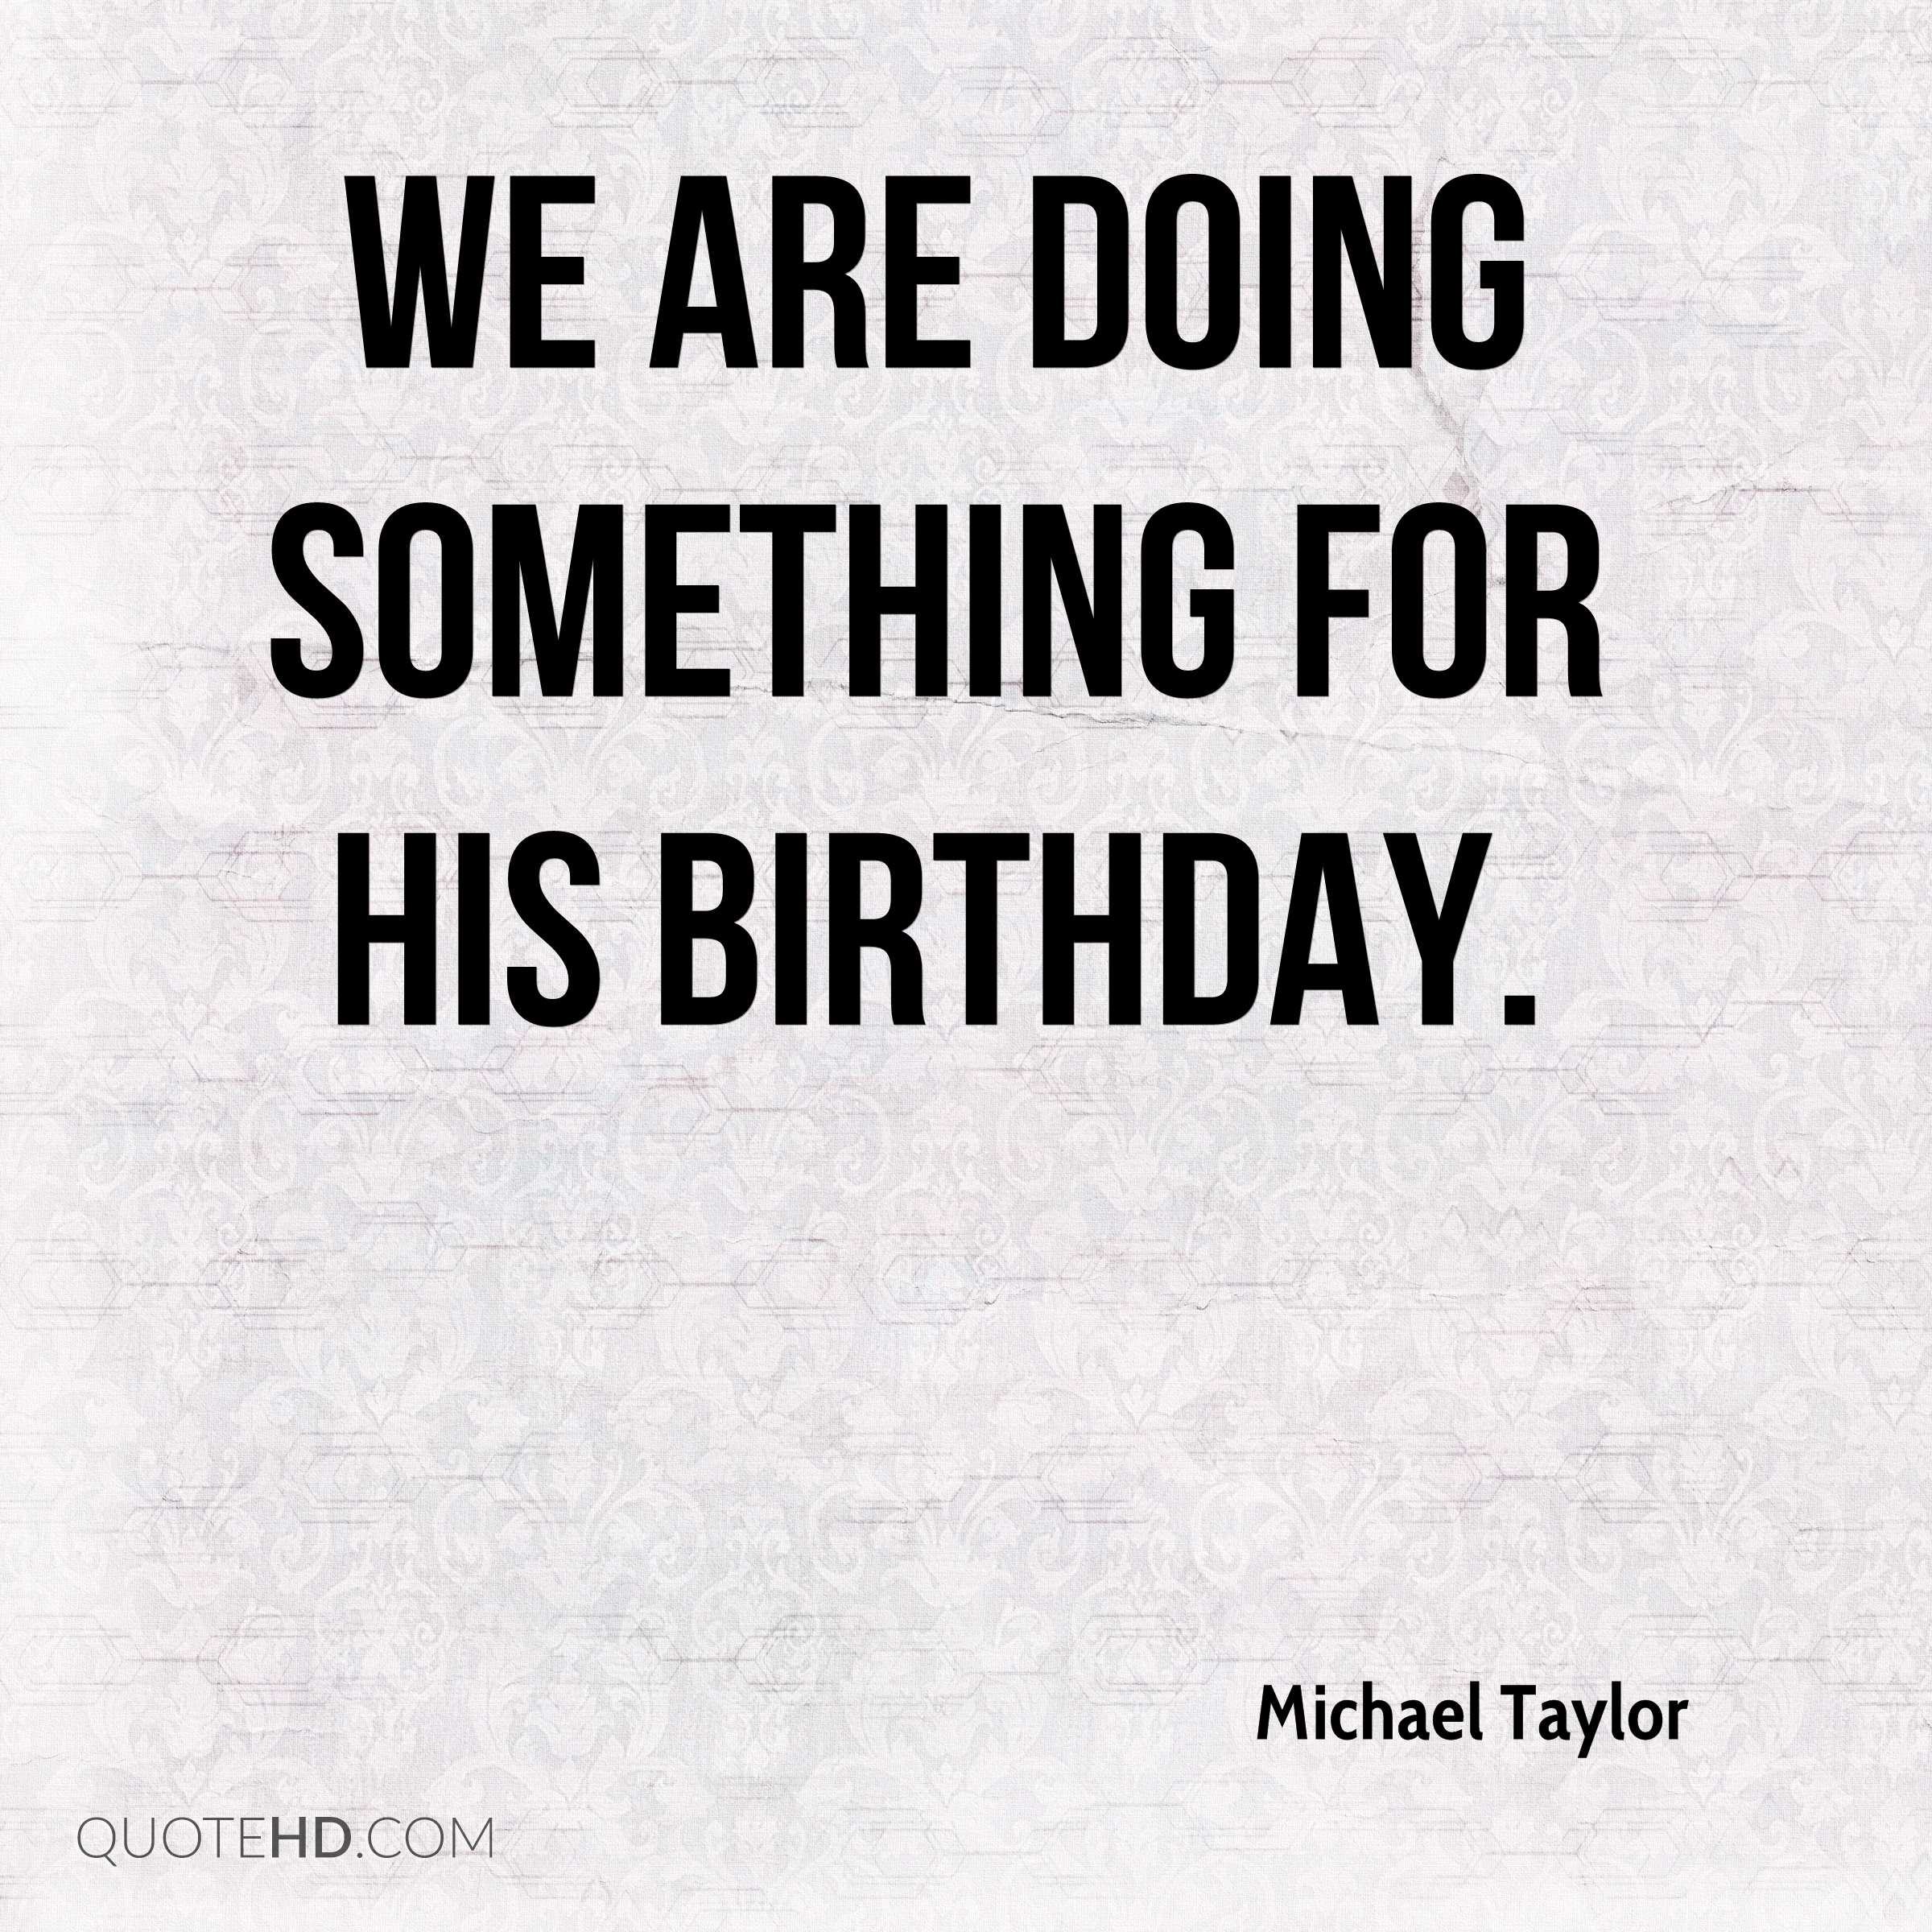 We are doing something for his birthday.